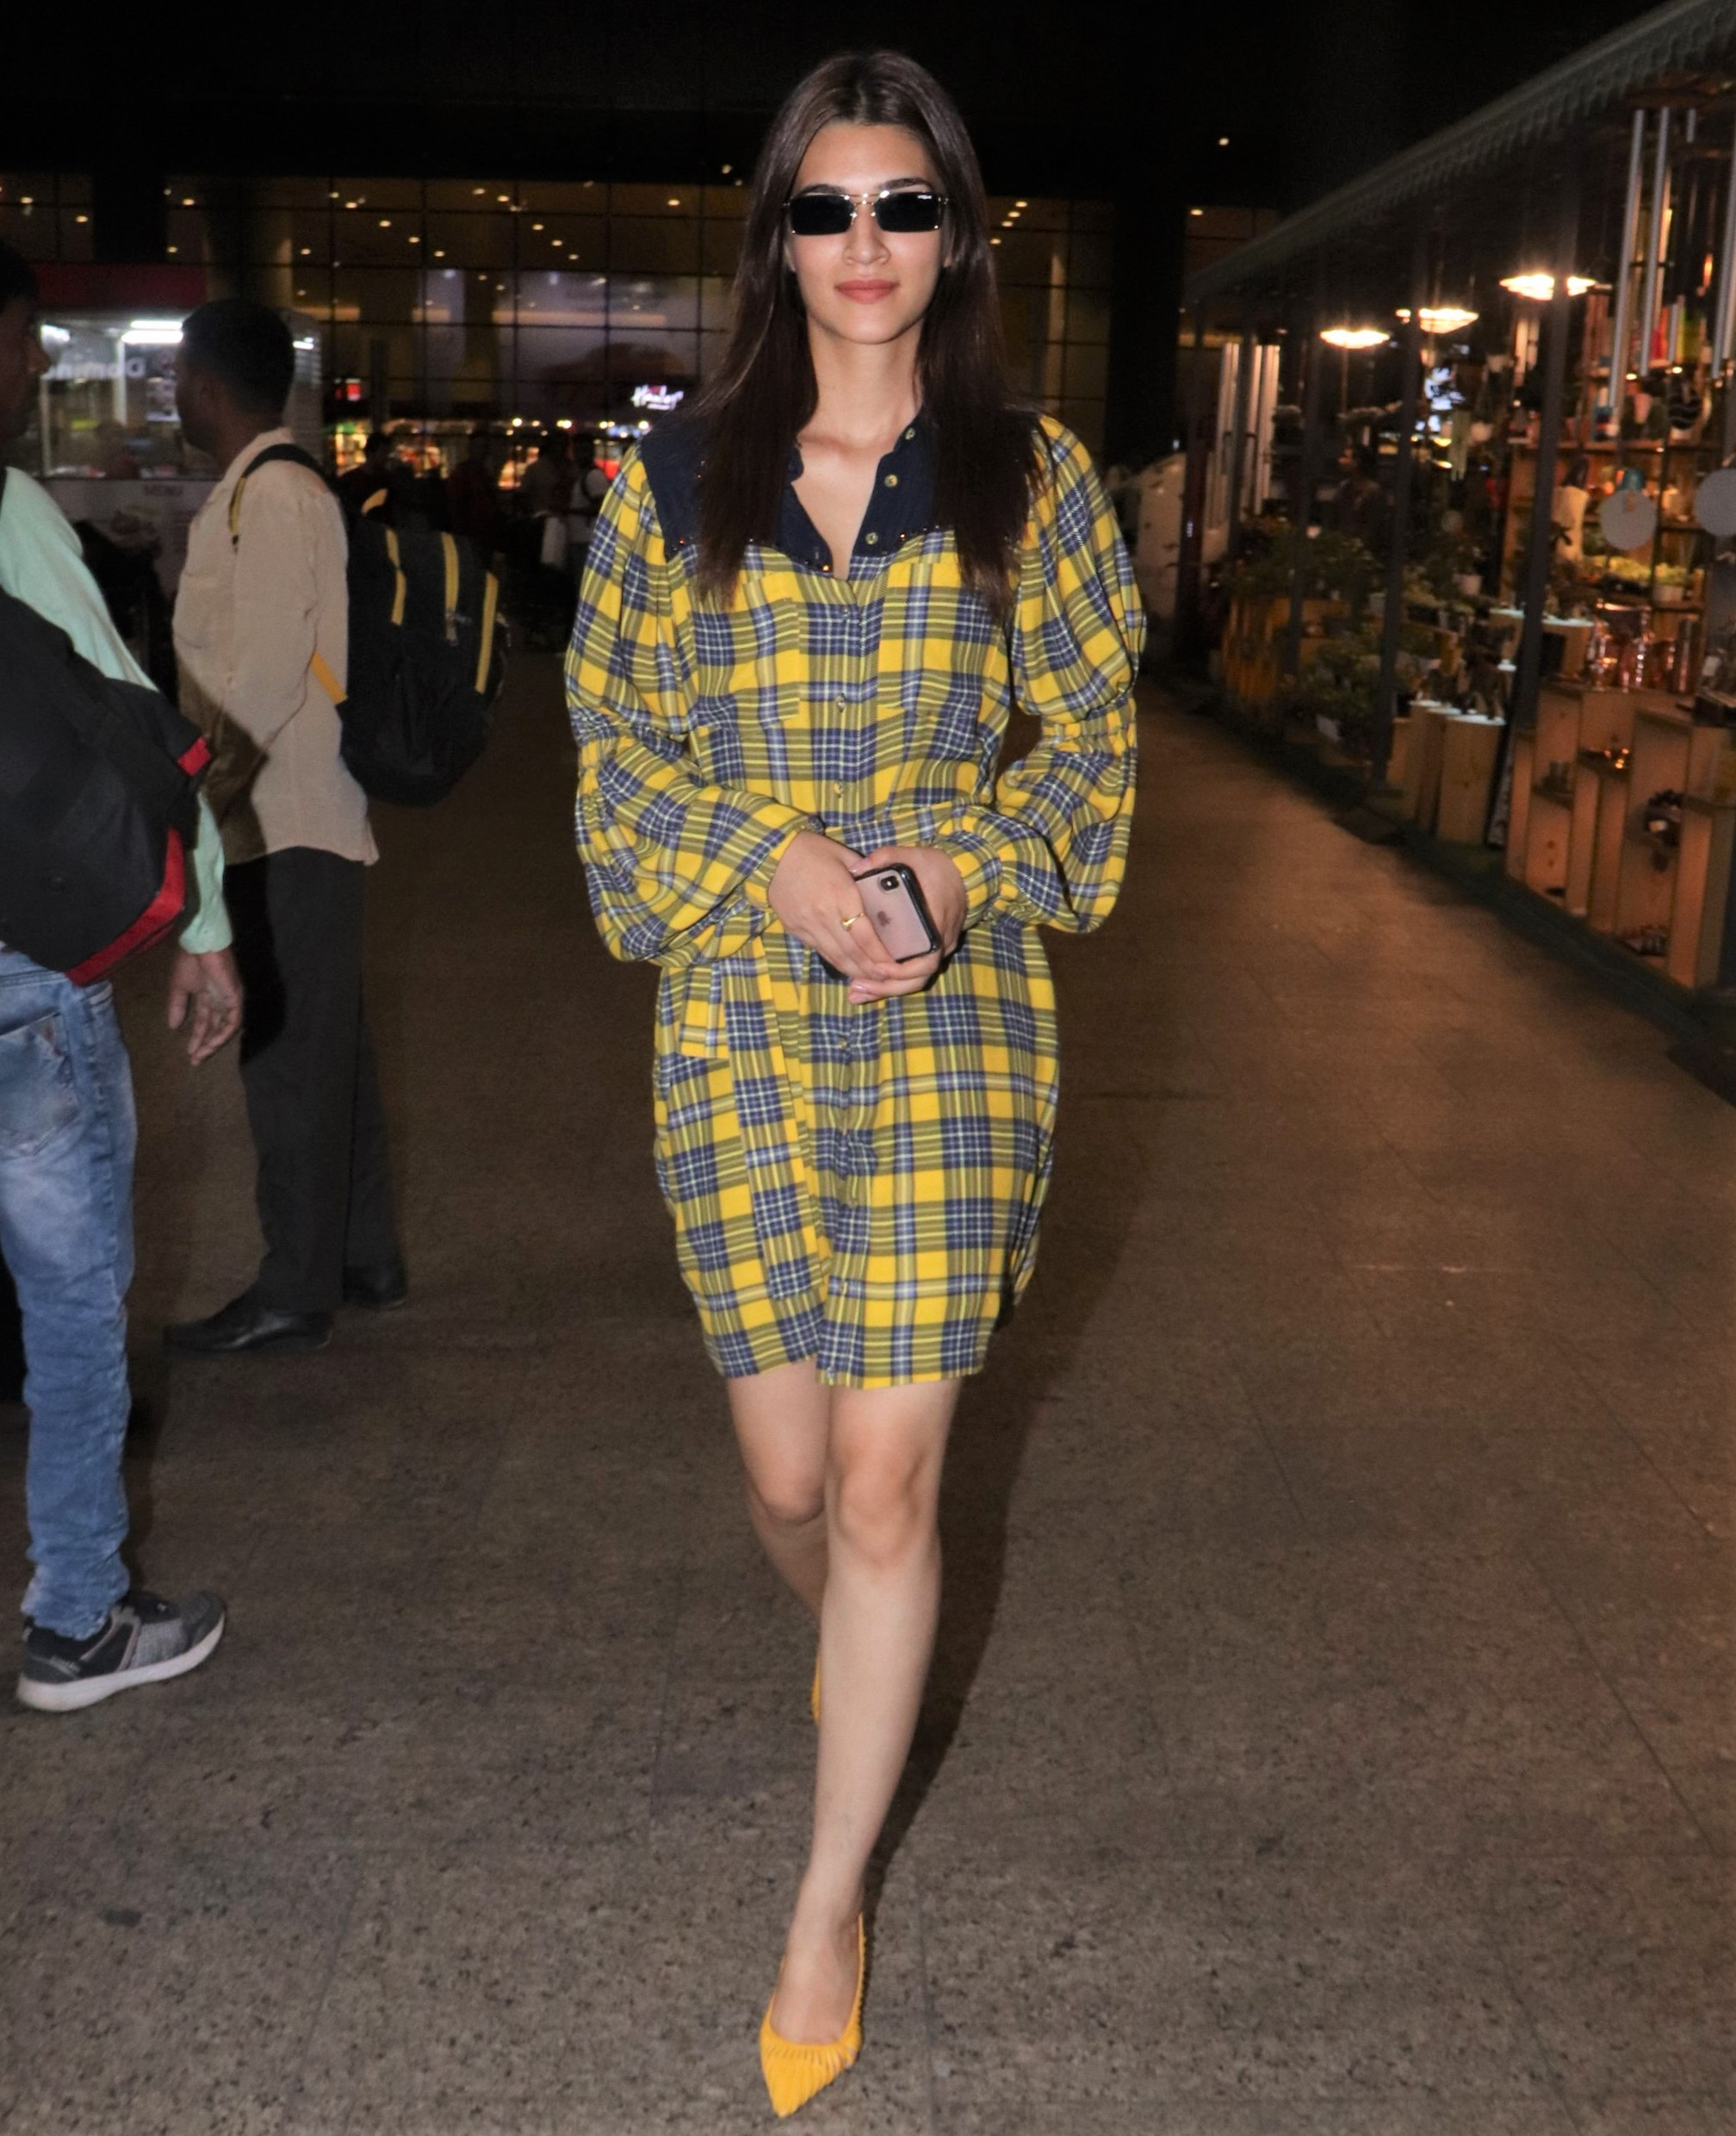 Kriti Sanon Wins Airport Fashion With a Yellow Plaid Dress